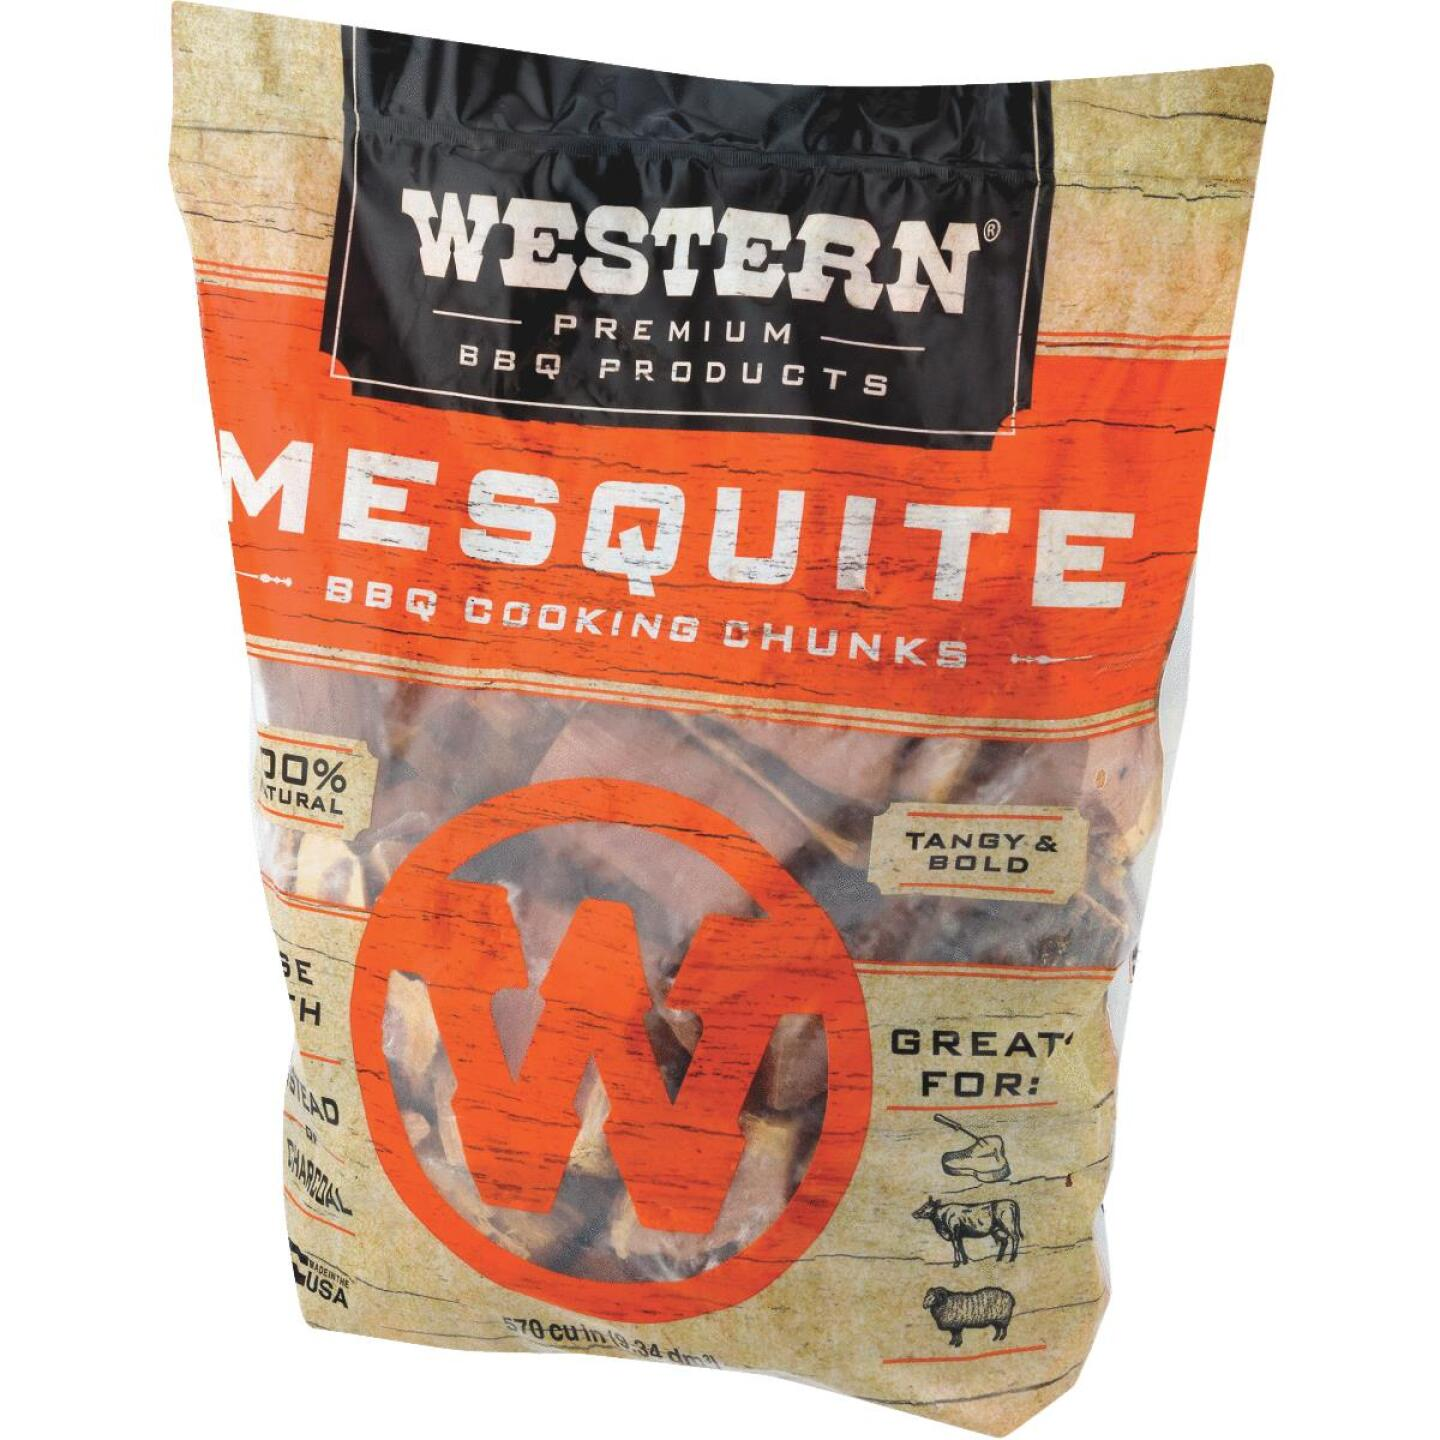 Western 6 Lb. Mesquite Wood Smoking Chunks Image 2